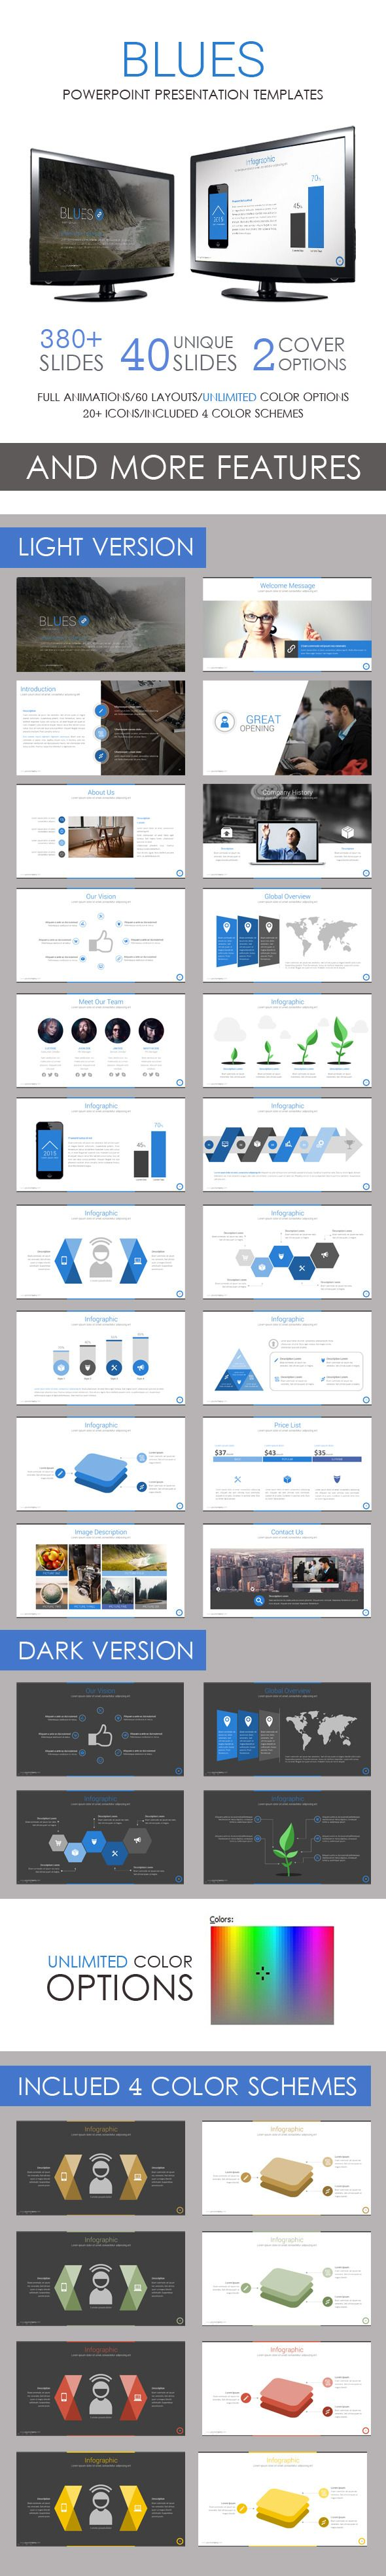 Blues PowerPoint Template #design Download: http://graphicriver.net/item/blues-powerpoint-template/12029481?ref=ksioks